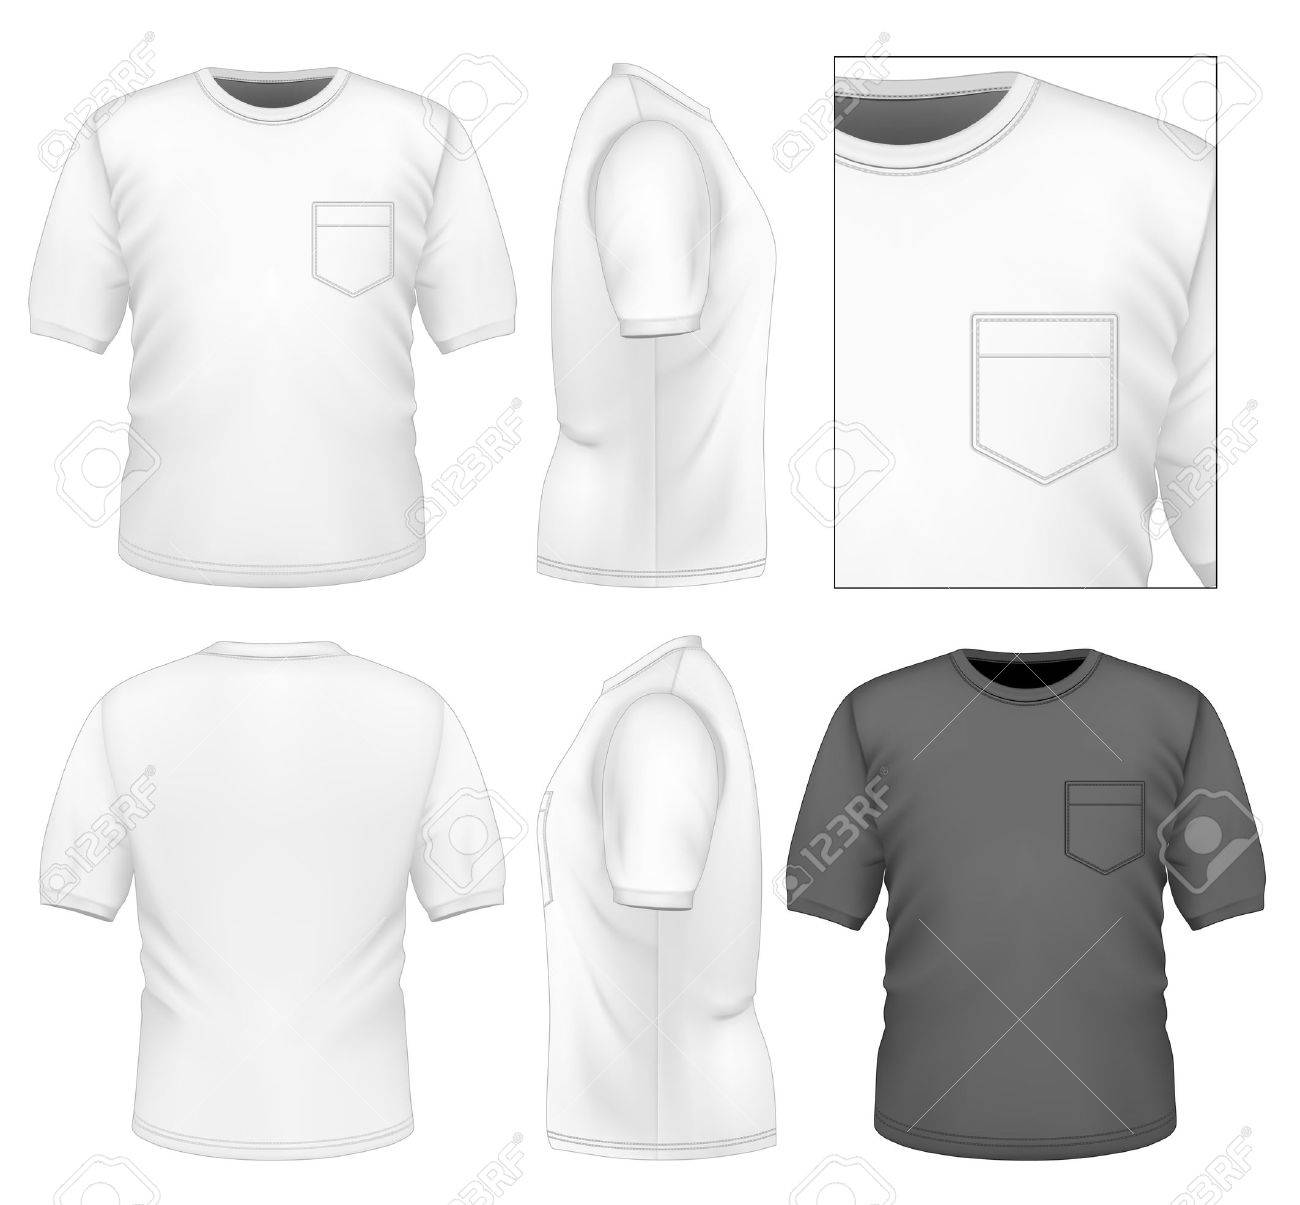 White t shirt front and back template - Photo Realistic Vector Illustration Men S T Shirt Design Template Front View